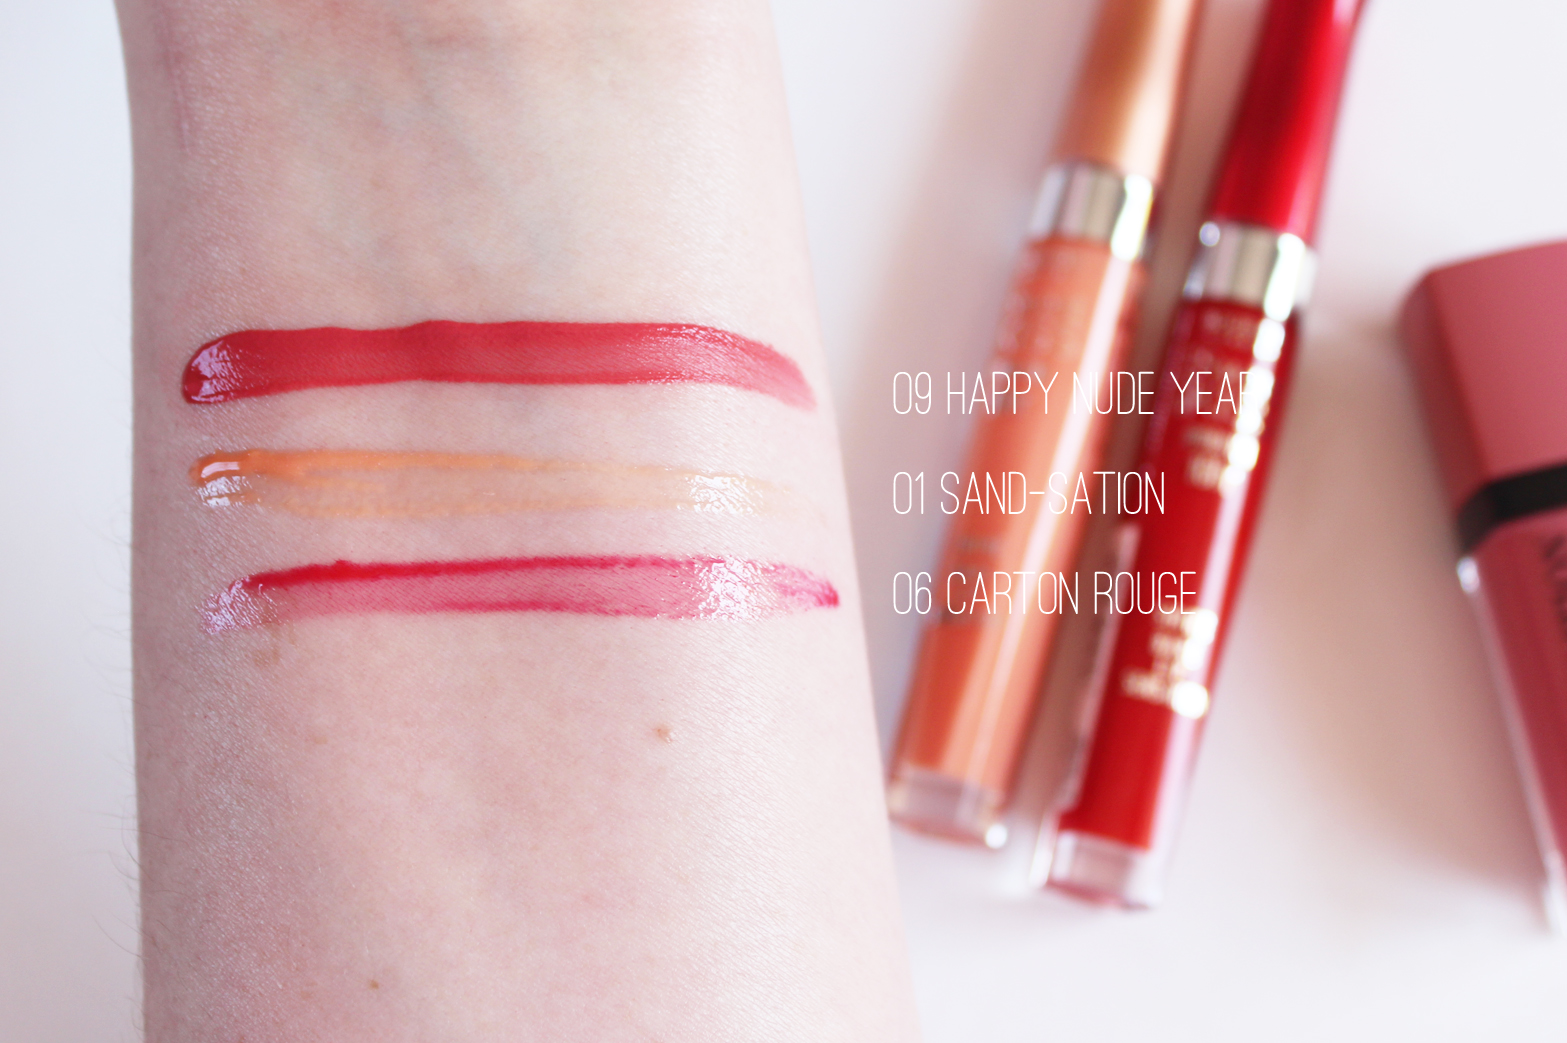 BOURJOIS PARIS | Upcoming Releases + First Impressions - Rouge Edition Velvet + Sweet Kiss Gloss - CassandraMyee